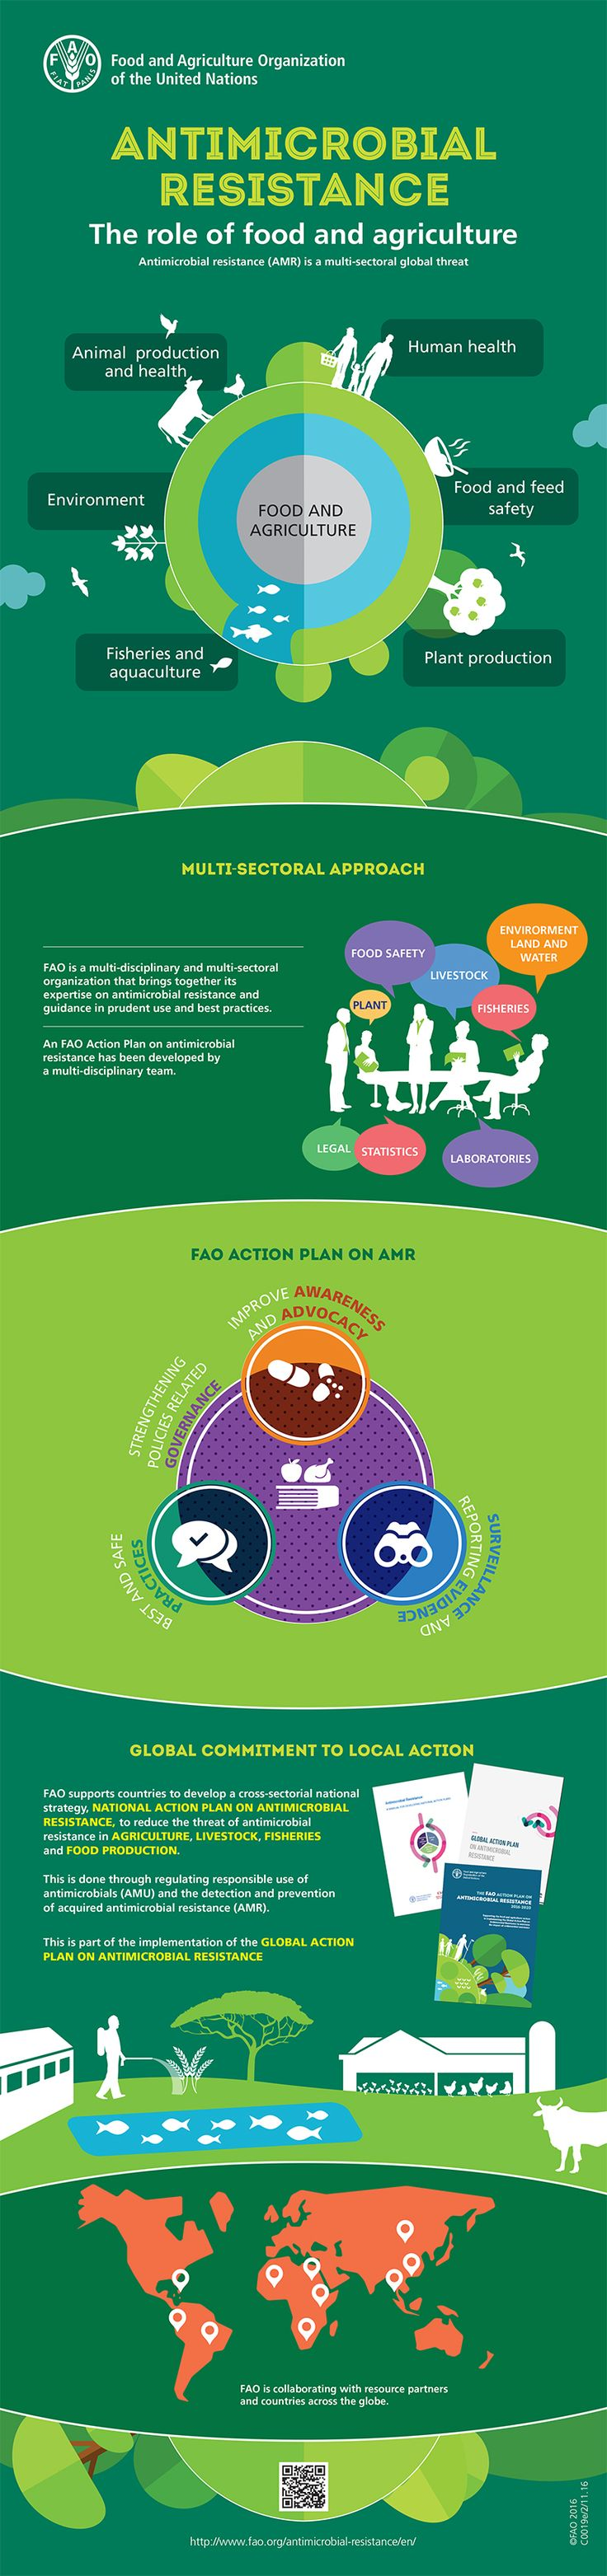 Antimicrobial Resistance: The Role of Food and Agriculture